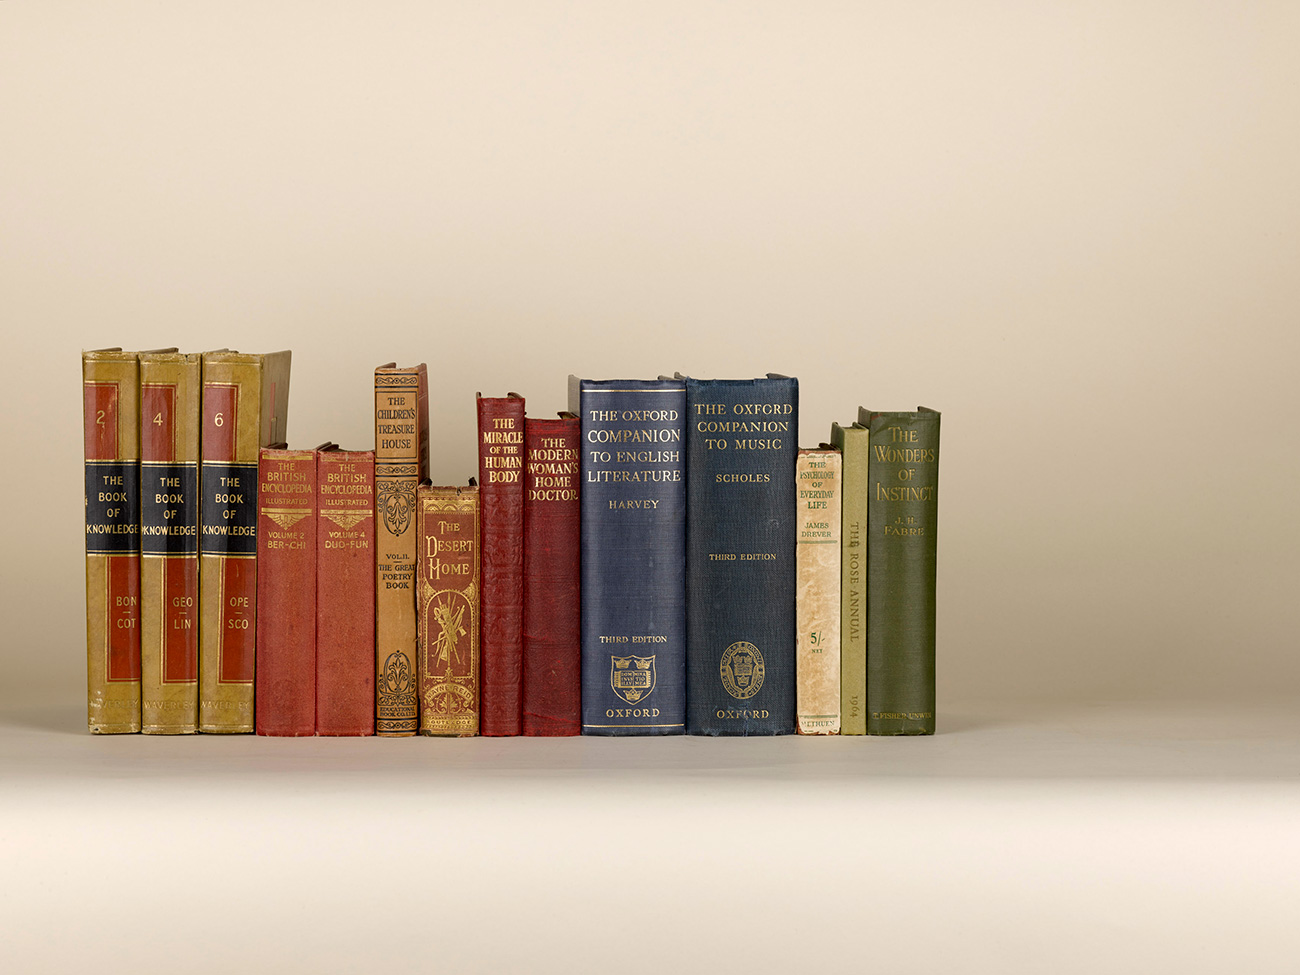 View of the spines of 14 hardback reference books, some aged or in lightly tattered condition